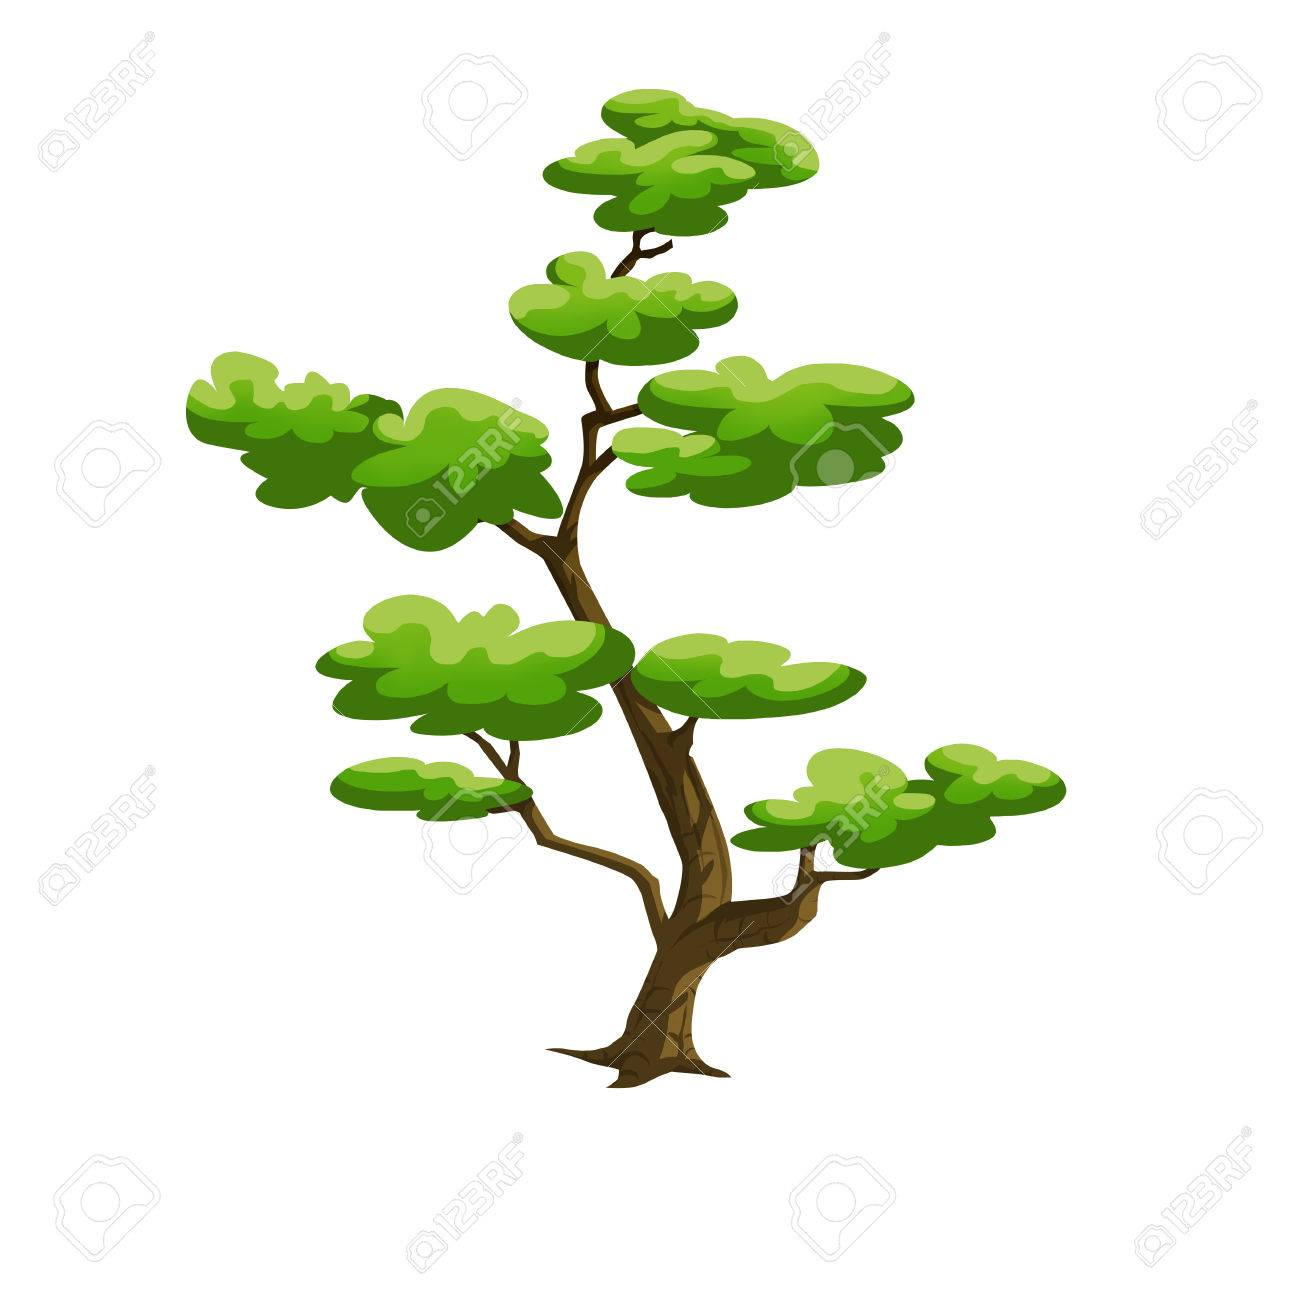 Trees For Cartoon Stock Photo Picture And Royalty Free Image Image 46202017 Cartoon tree with branches black and white. trees for cartoon